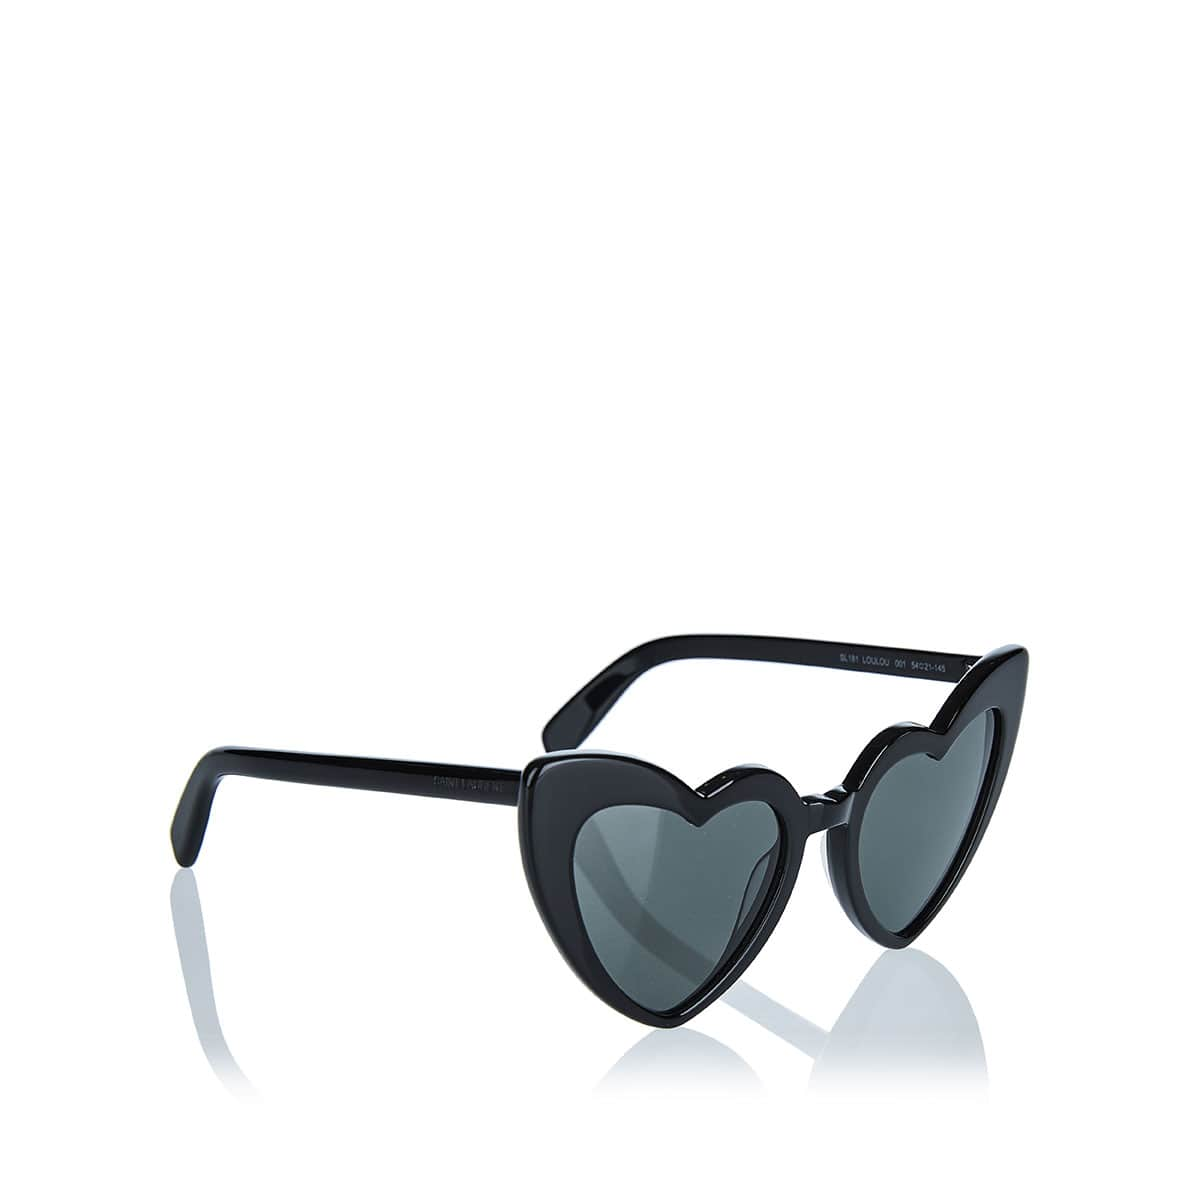 New Wave SL181 Loulou sunglasses